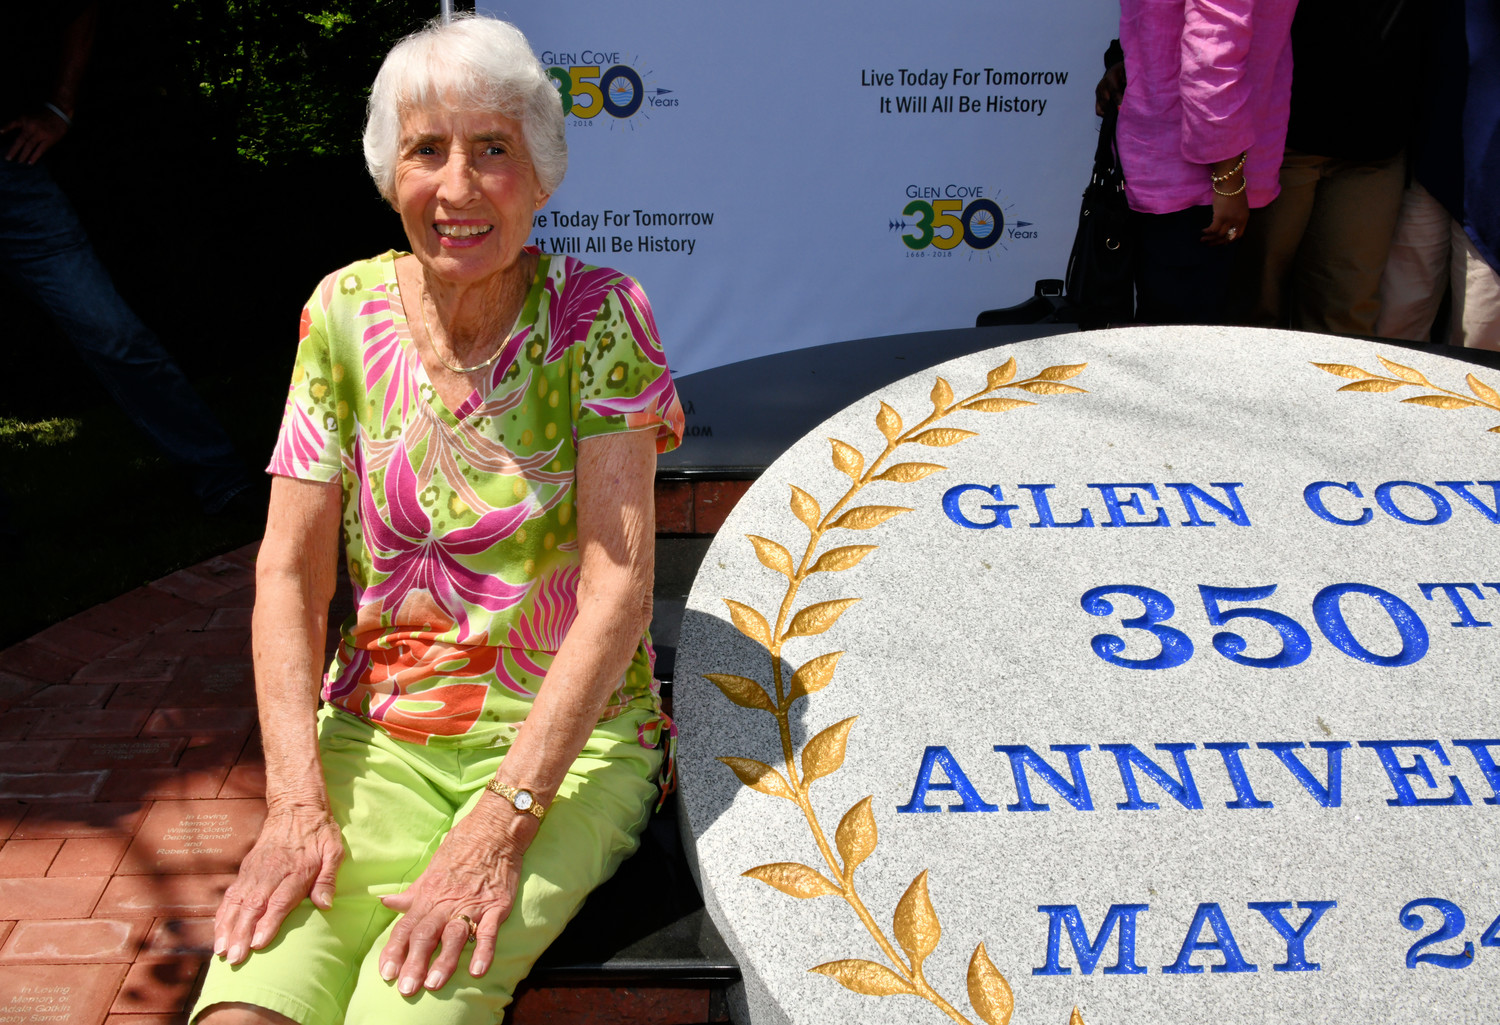 Barbara Coles Schiraldi, a descendant of one of Glen Cove's founding families, sat next to the new 350 monument below at Mill Pond.